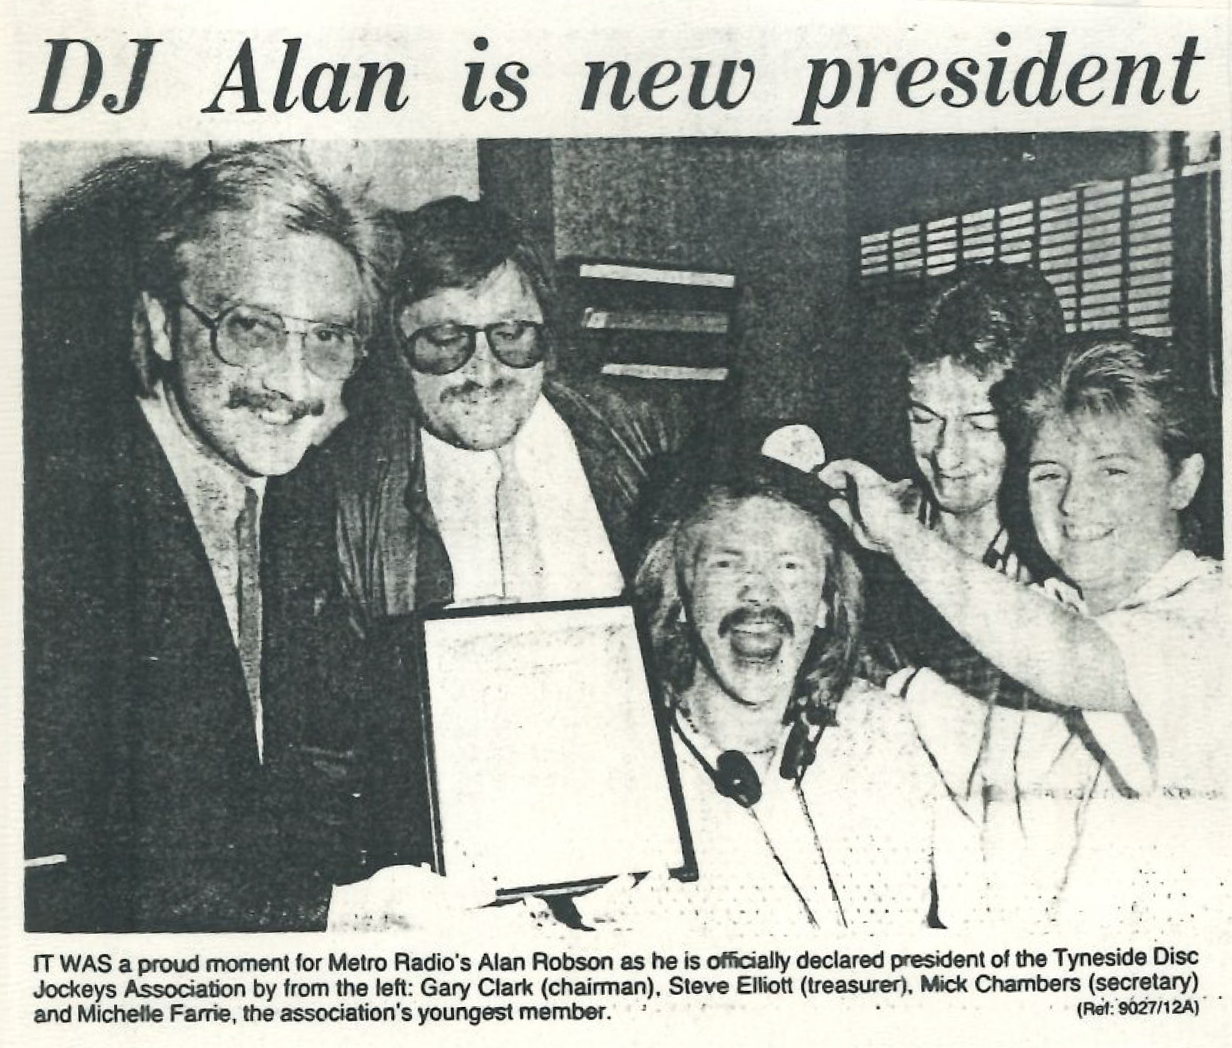 *Article* Alan Is President!